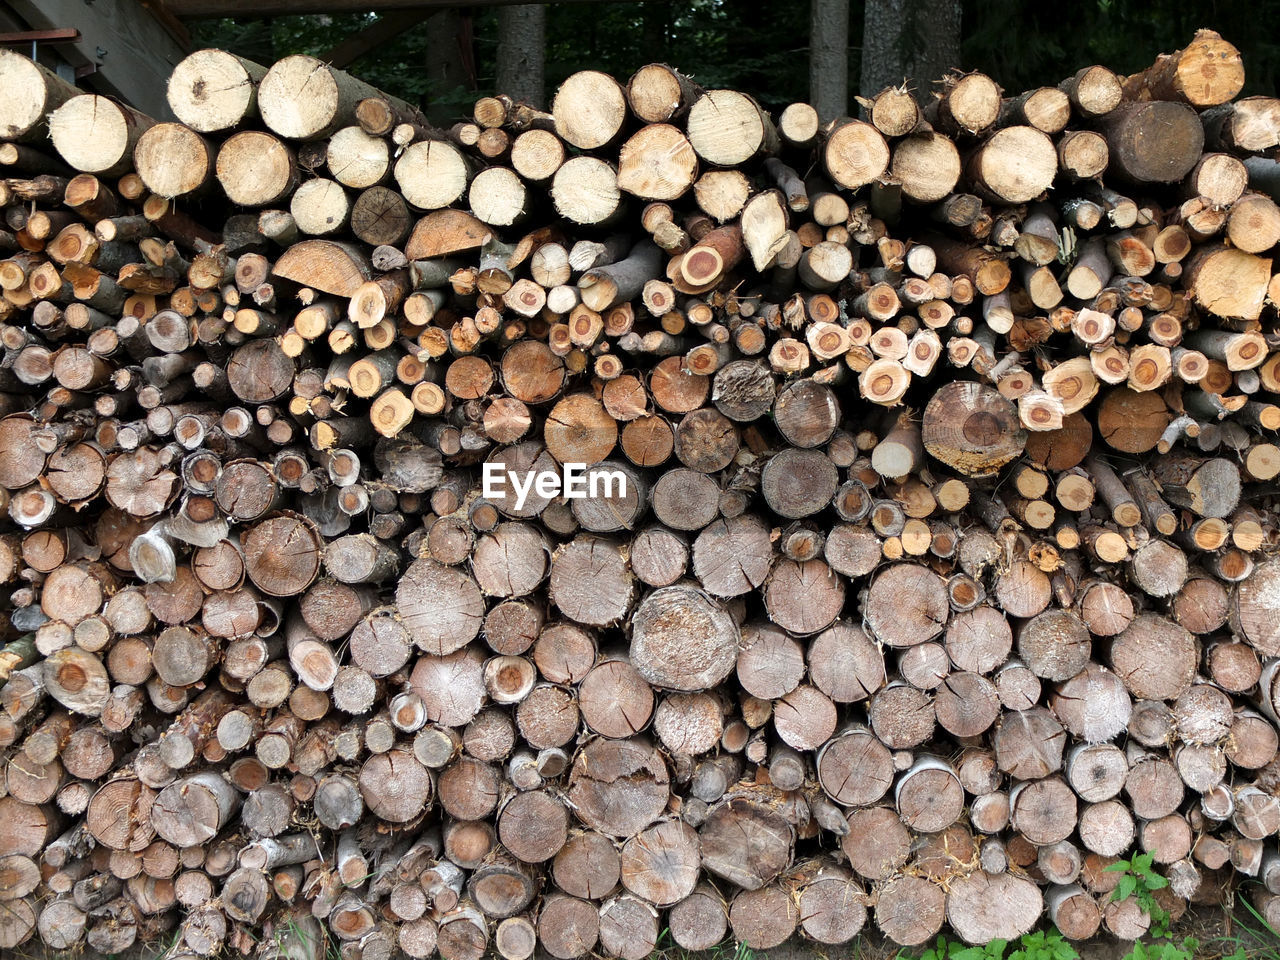 log, wood, stack, timber, firewood, lumber industry, large group of objects, forest, tree, abundance, deforestation, wood - material, full frame, no people, nature, day, backgrounds, heap, fuel and power generation, environmental issues, outdoors, woodpile